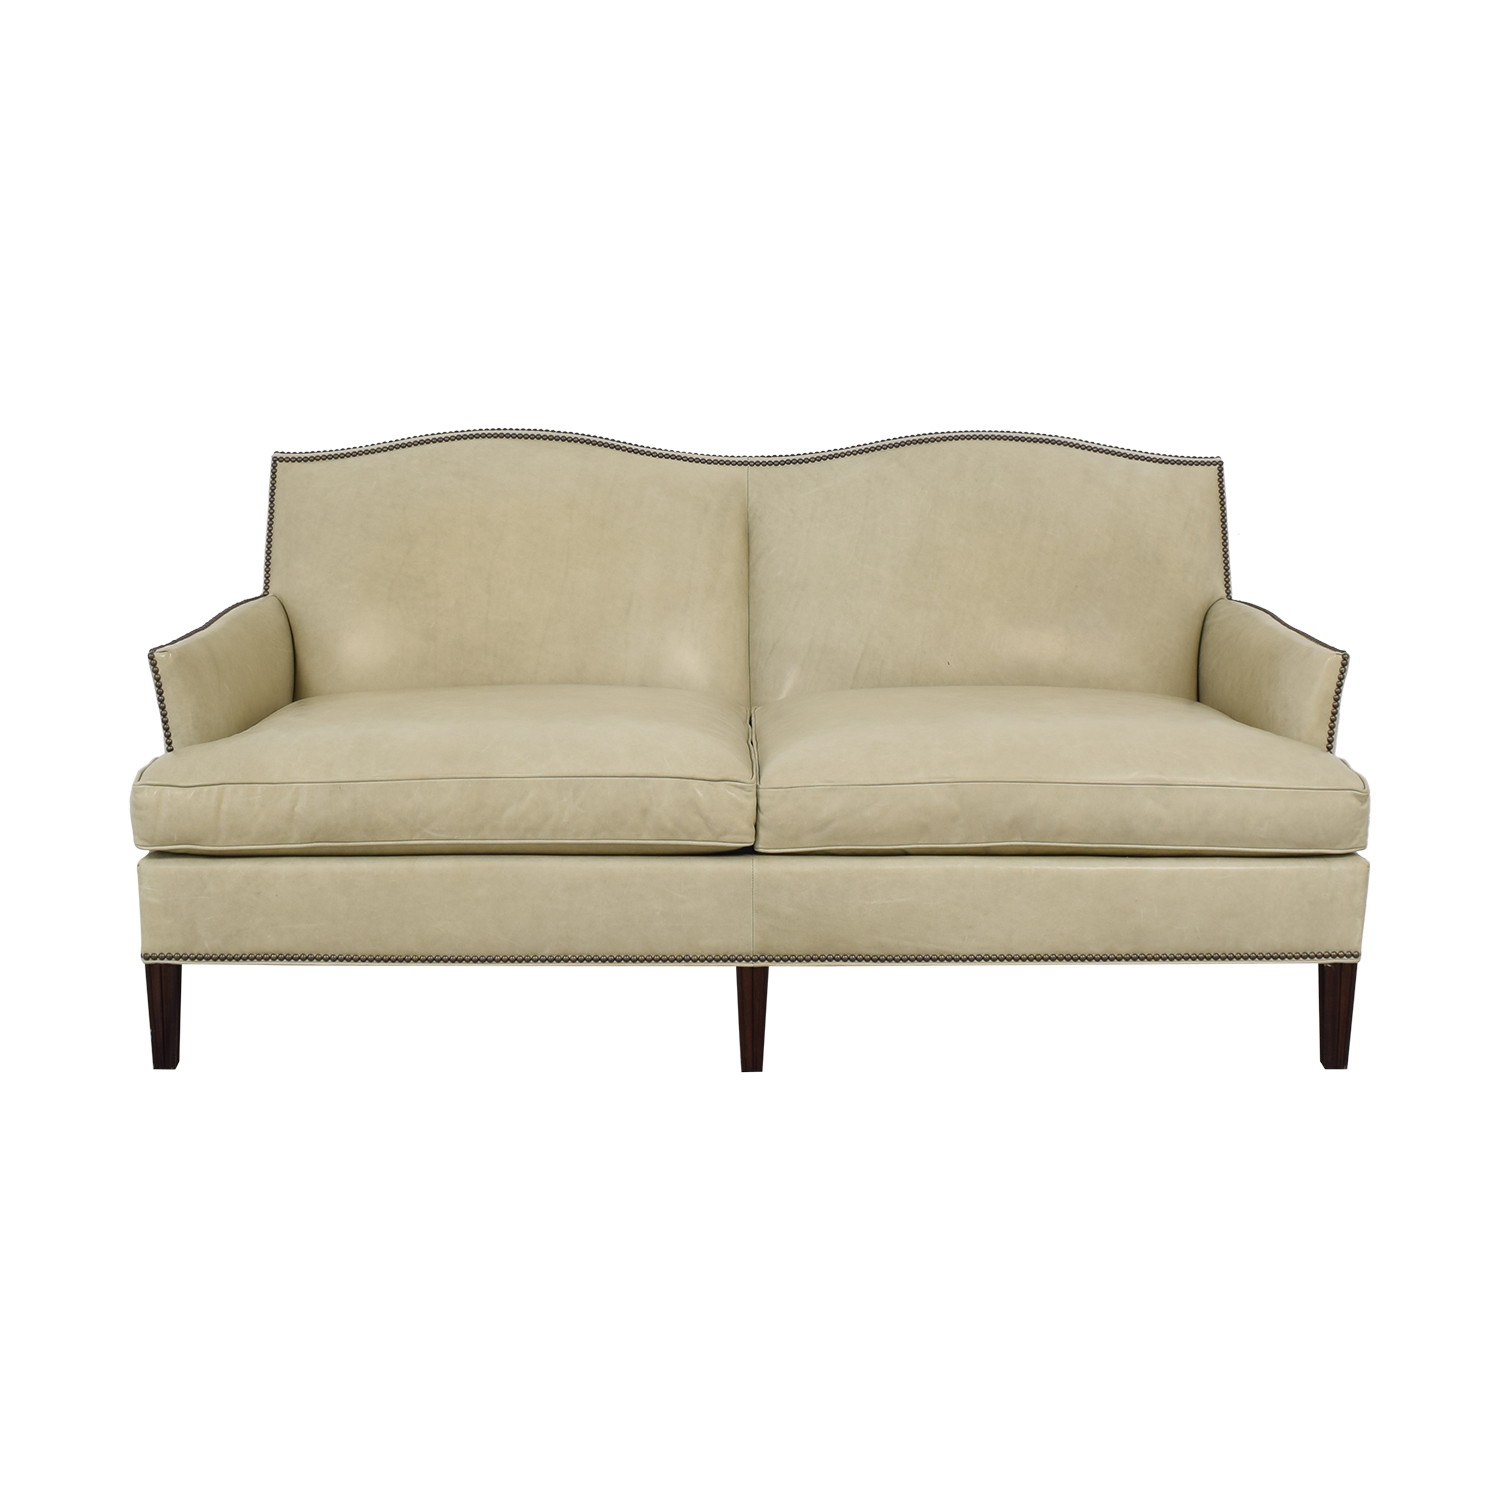 Hickory Chair Hickory Chair Studded Sofa discount